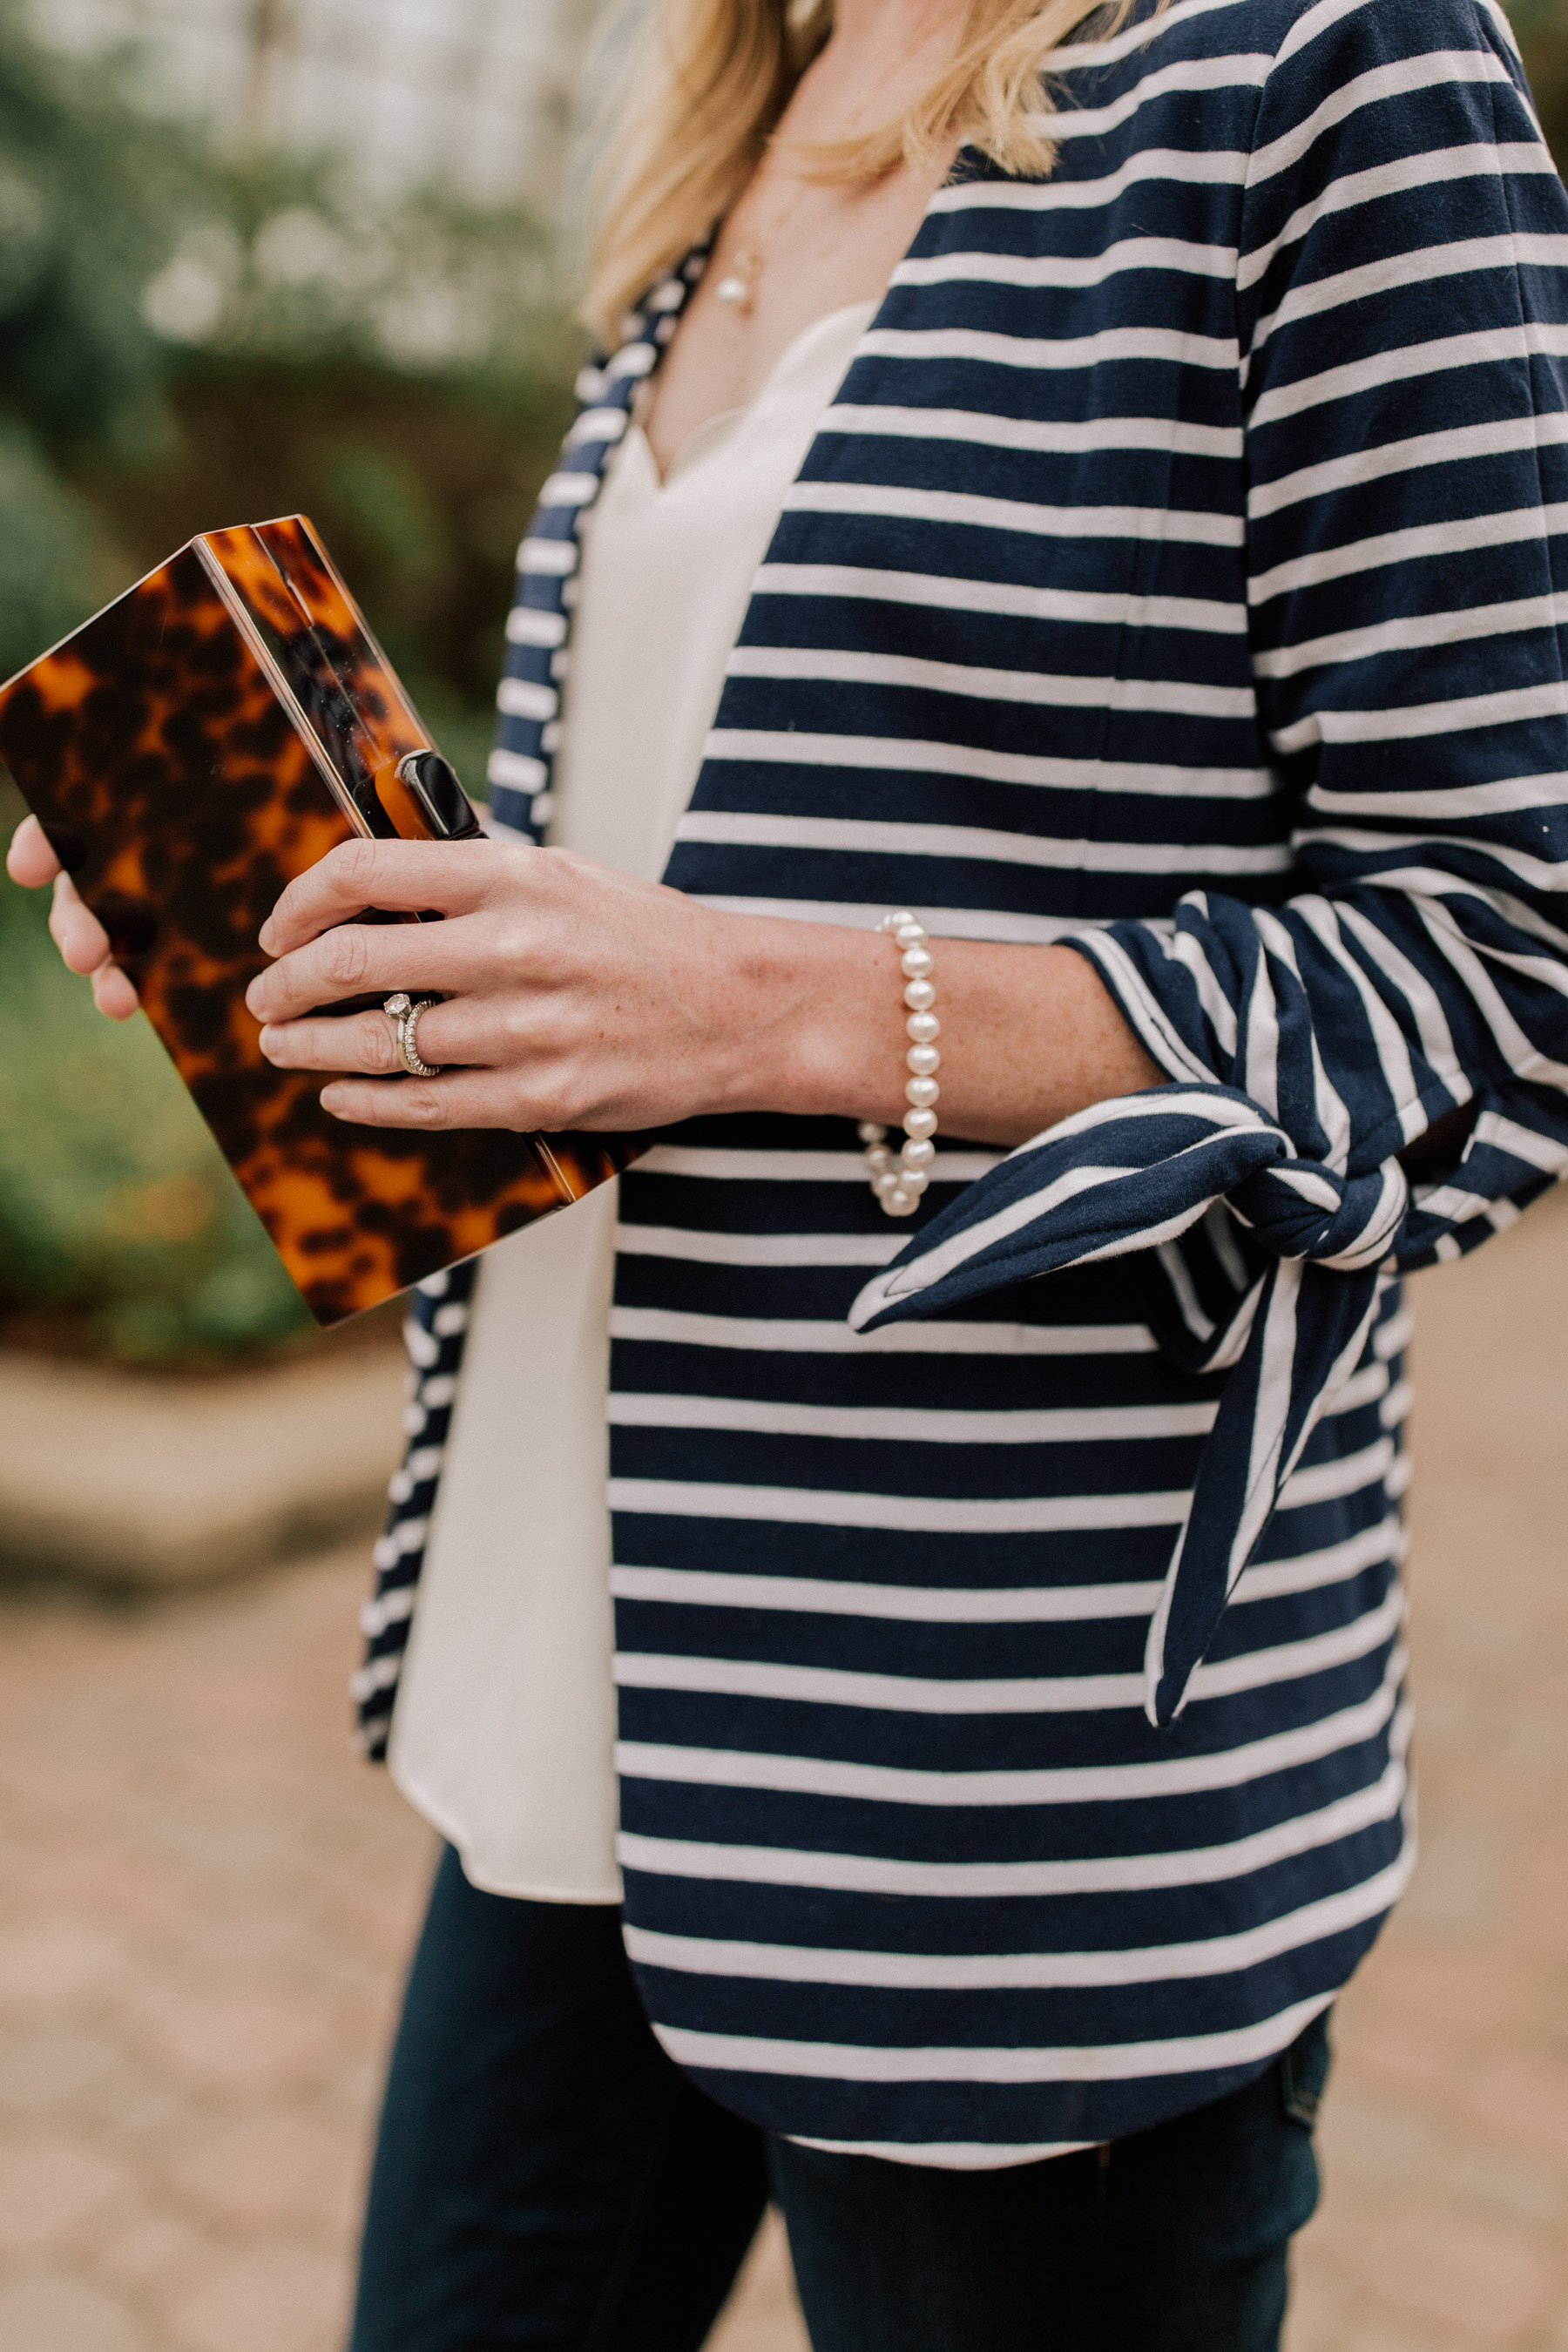 Pearls & Stripes: Transitional Look